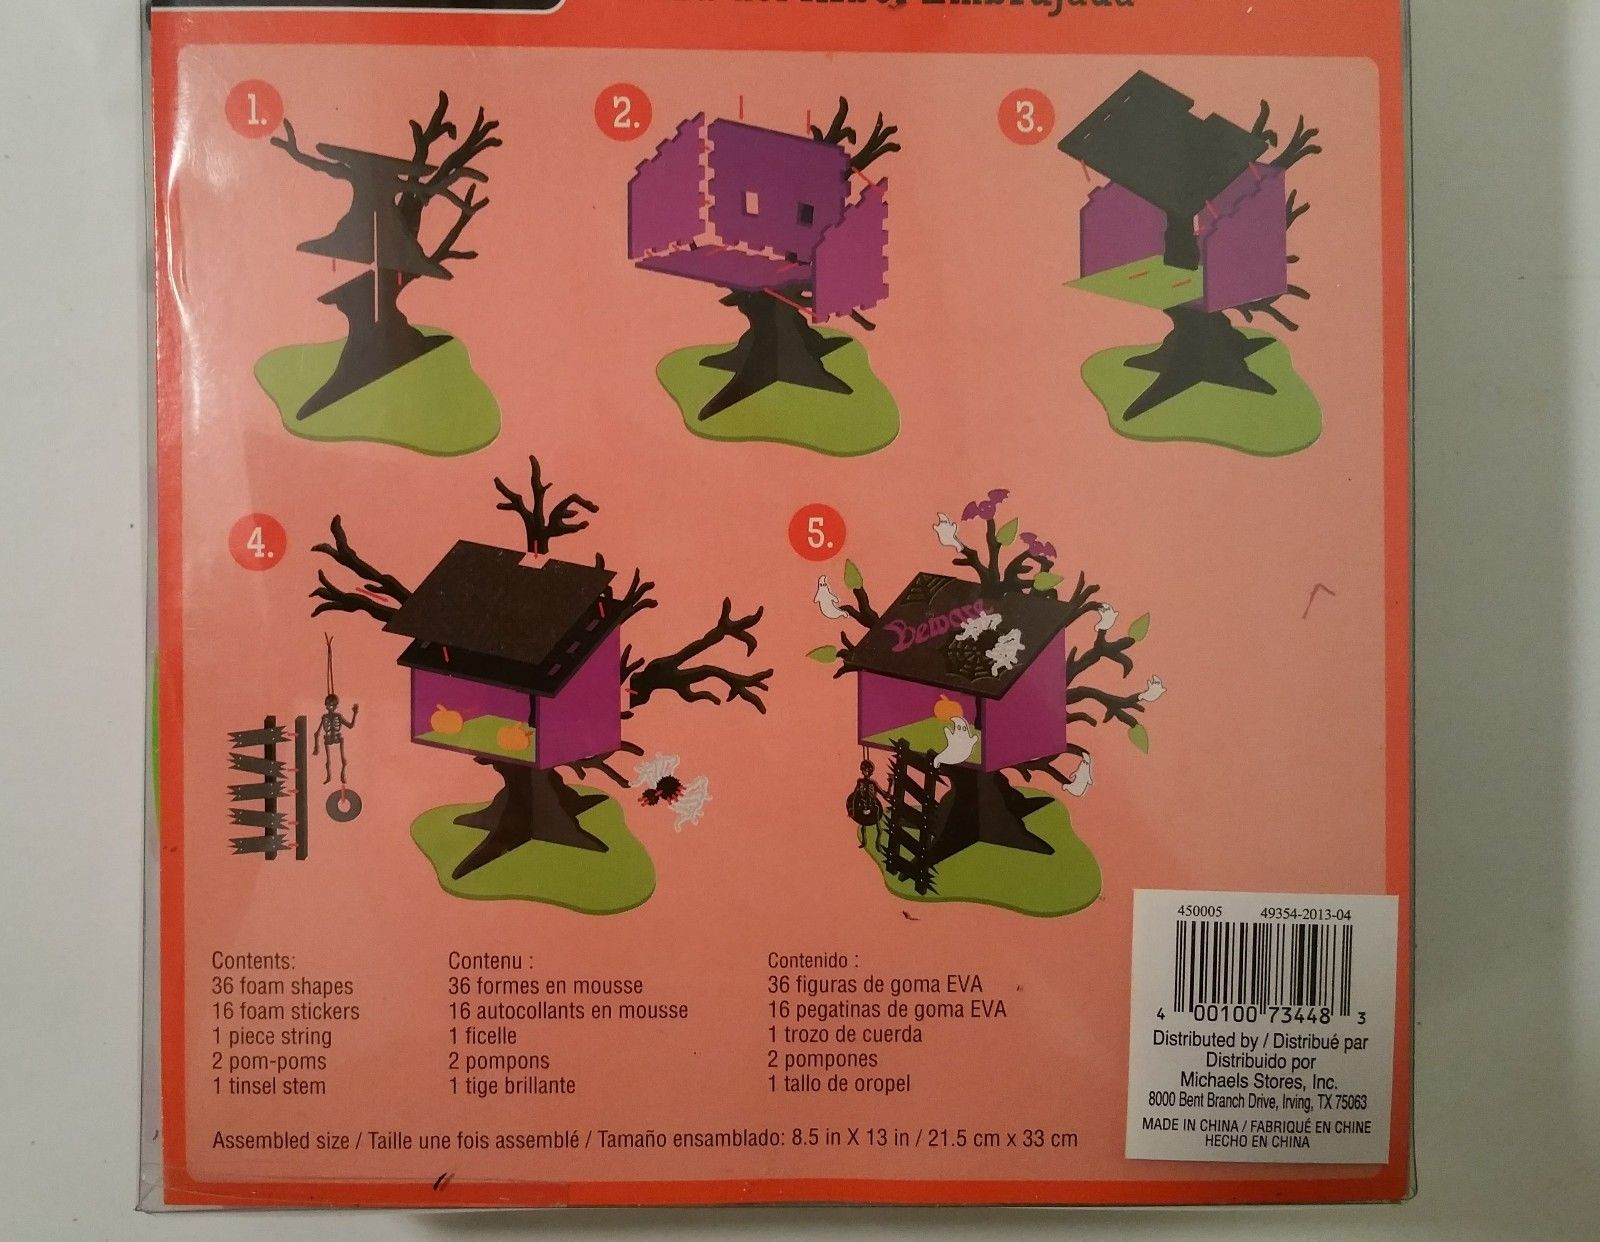 Description Halloween Foam Kit Creatology Haunted Tree House From Michaels Crafts Great For Activities By